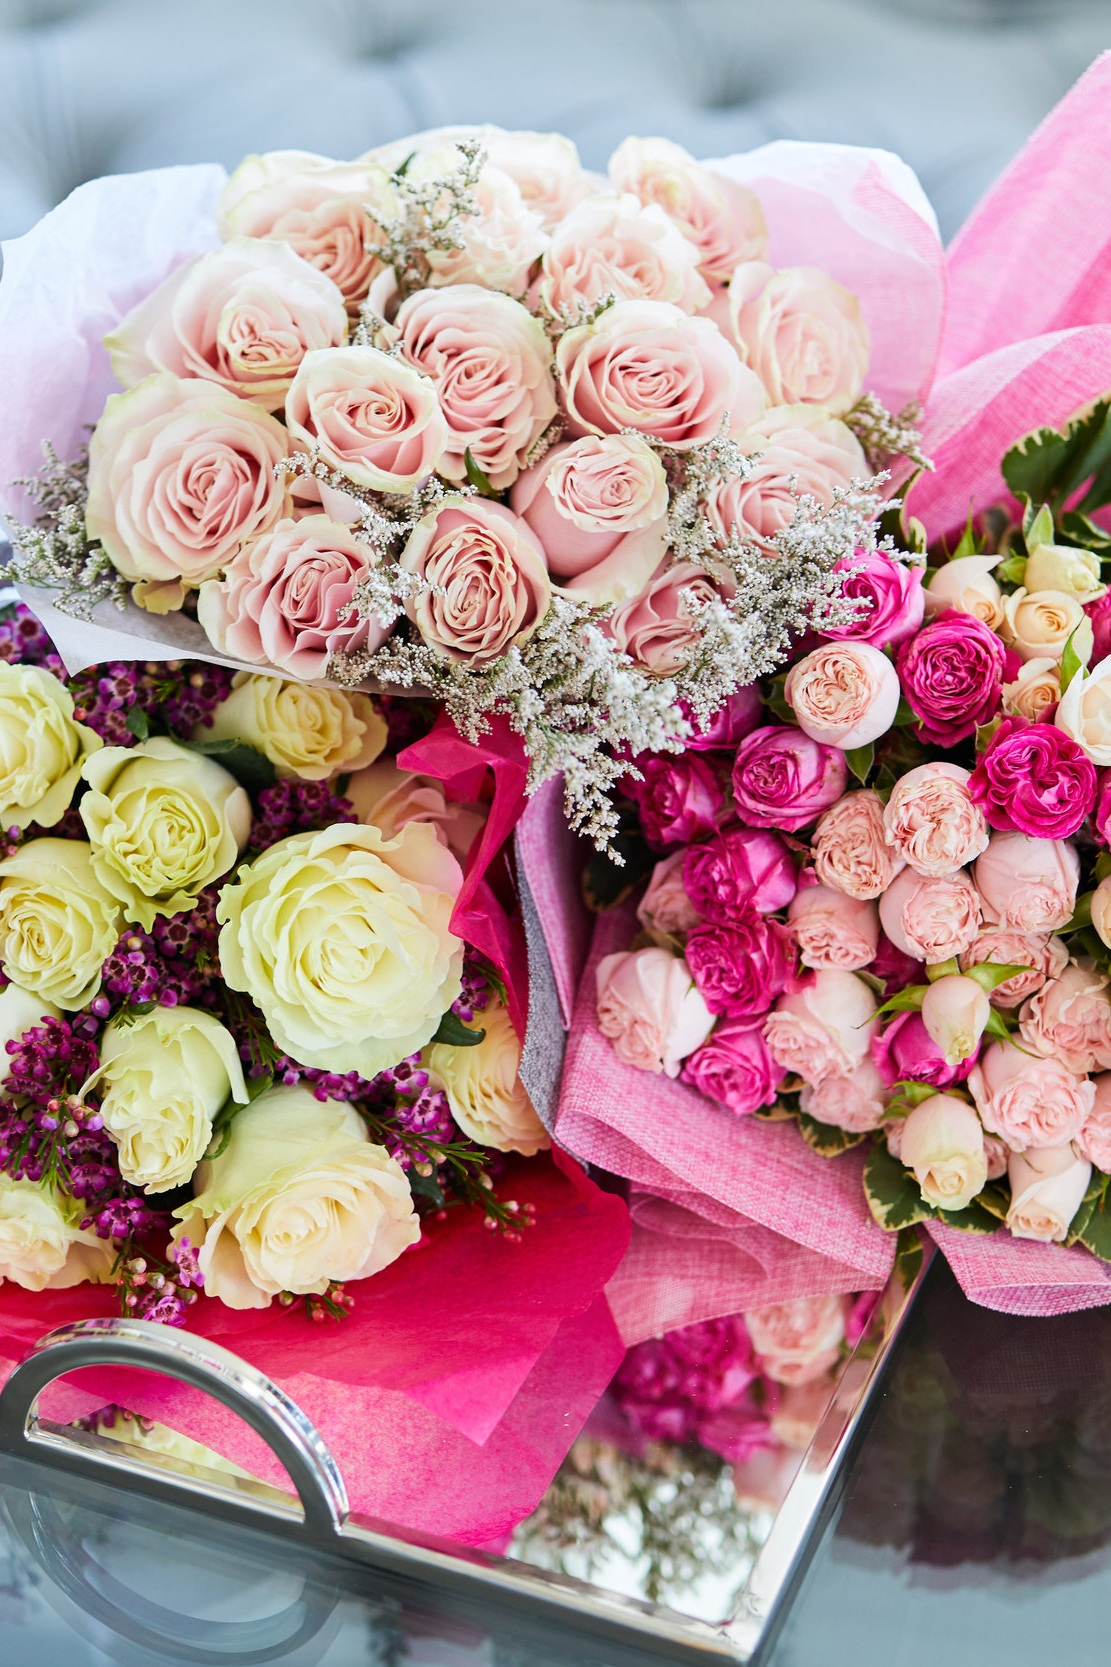 Bouquets of roses -